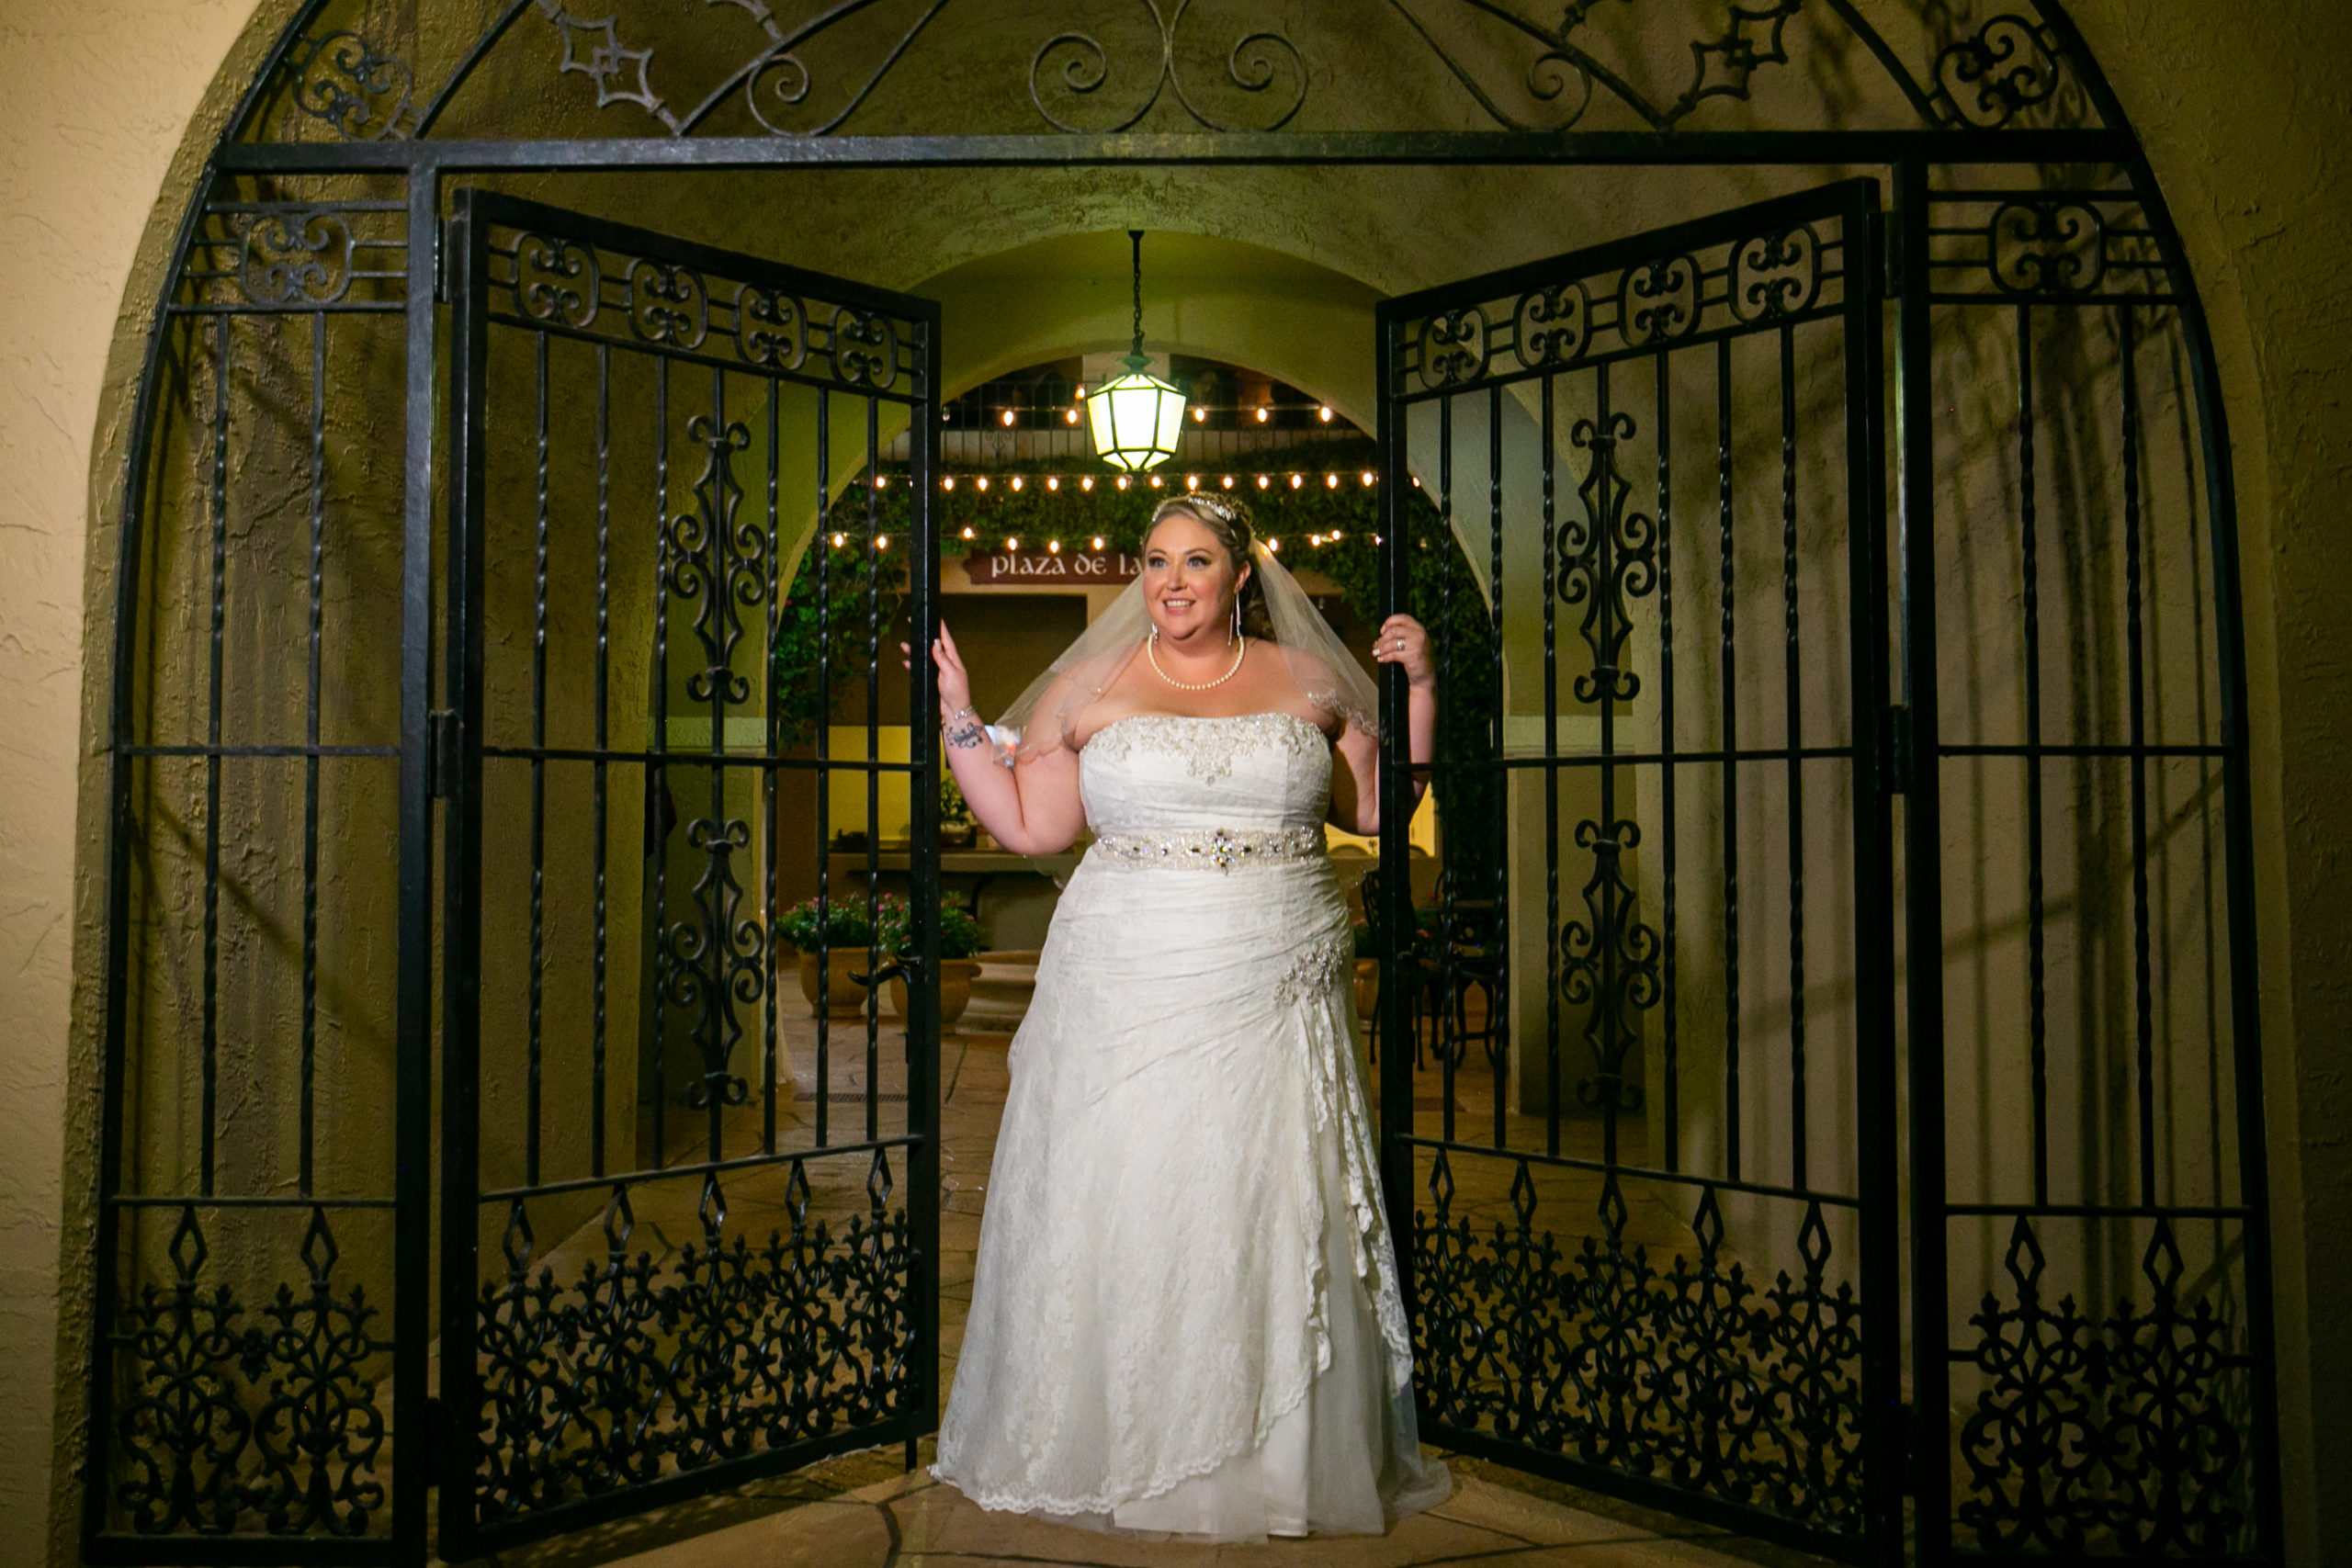 Bride at Mission Inn Gates